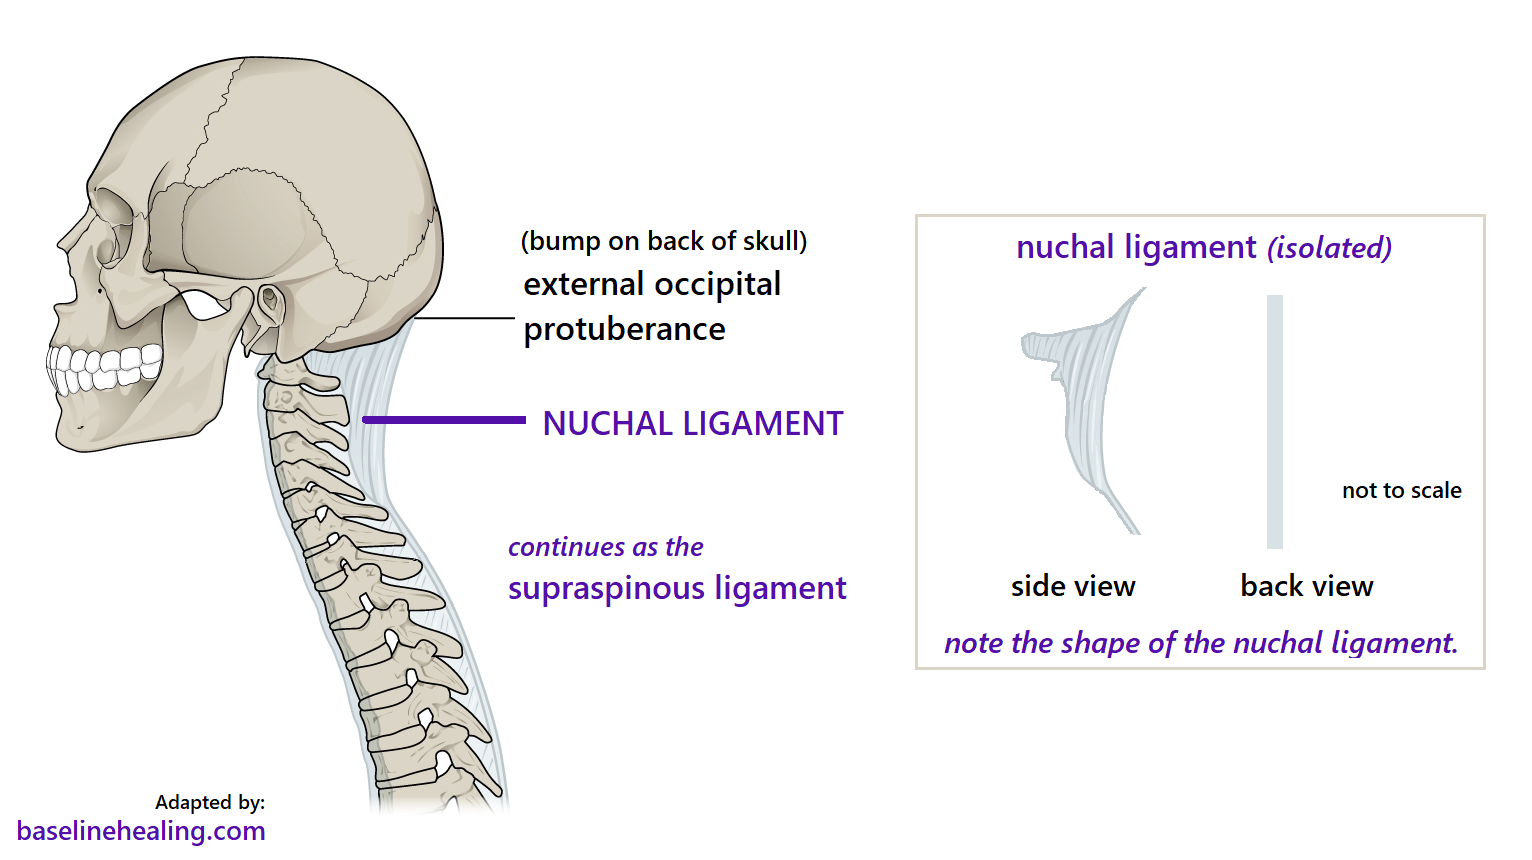 the nuchal ligament in the back of the neck attaching to the skull and cervical vertebrae.  a 2D (rough edged) triangle like ligament when seen from the side.  Long flat side down the back of the neck, extending to the cervical vertebrae with a bumpy edge as it attaches to the different shaped vertebrae.  Hard to describe!